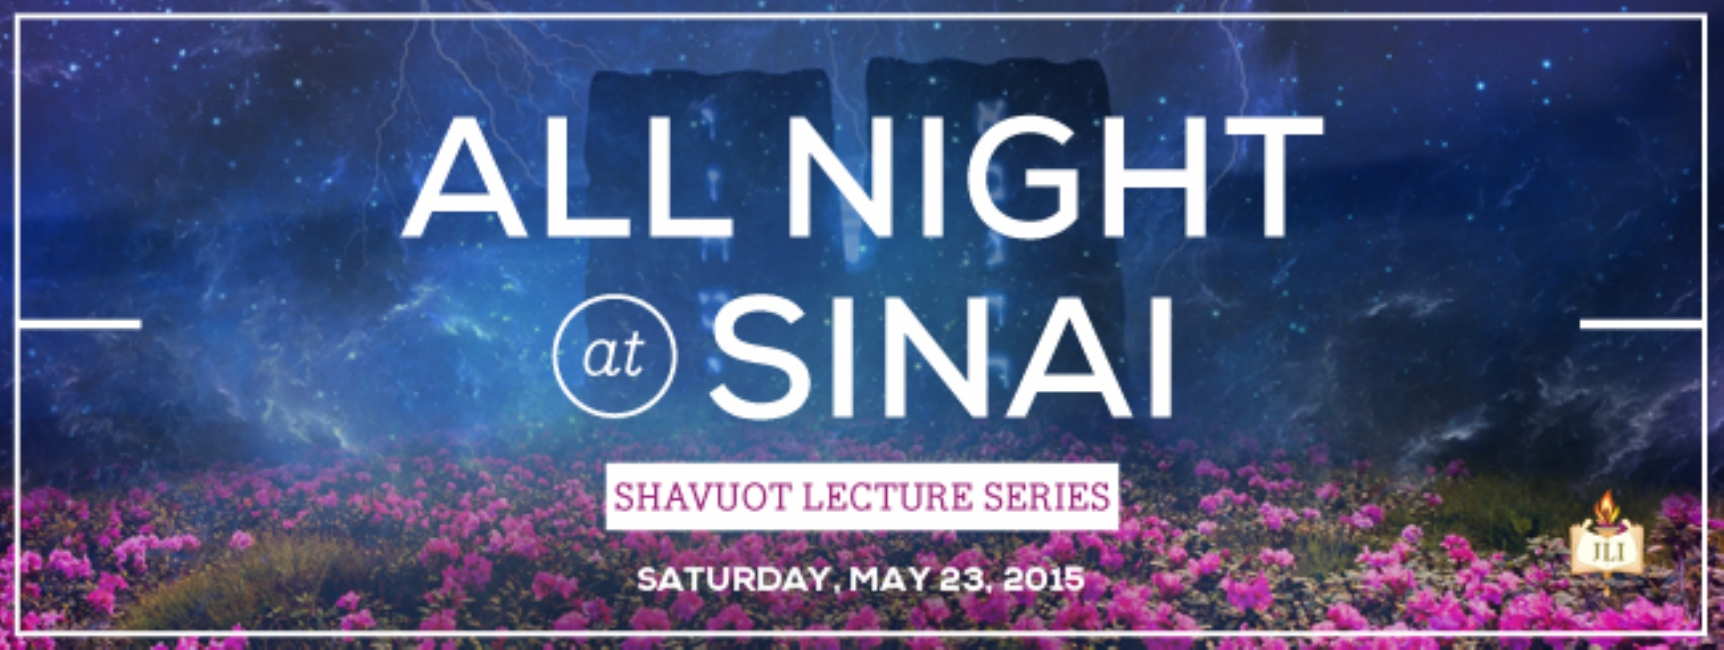 shavuous-chabad_banner_650x245-2015.jpg